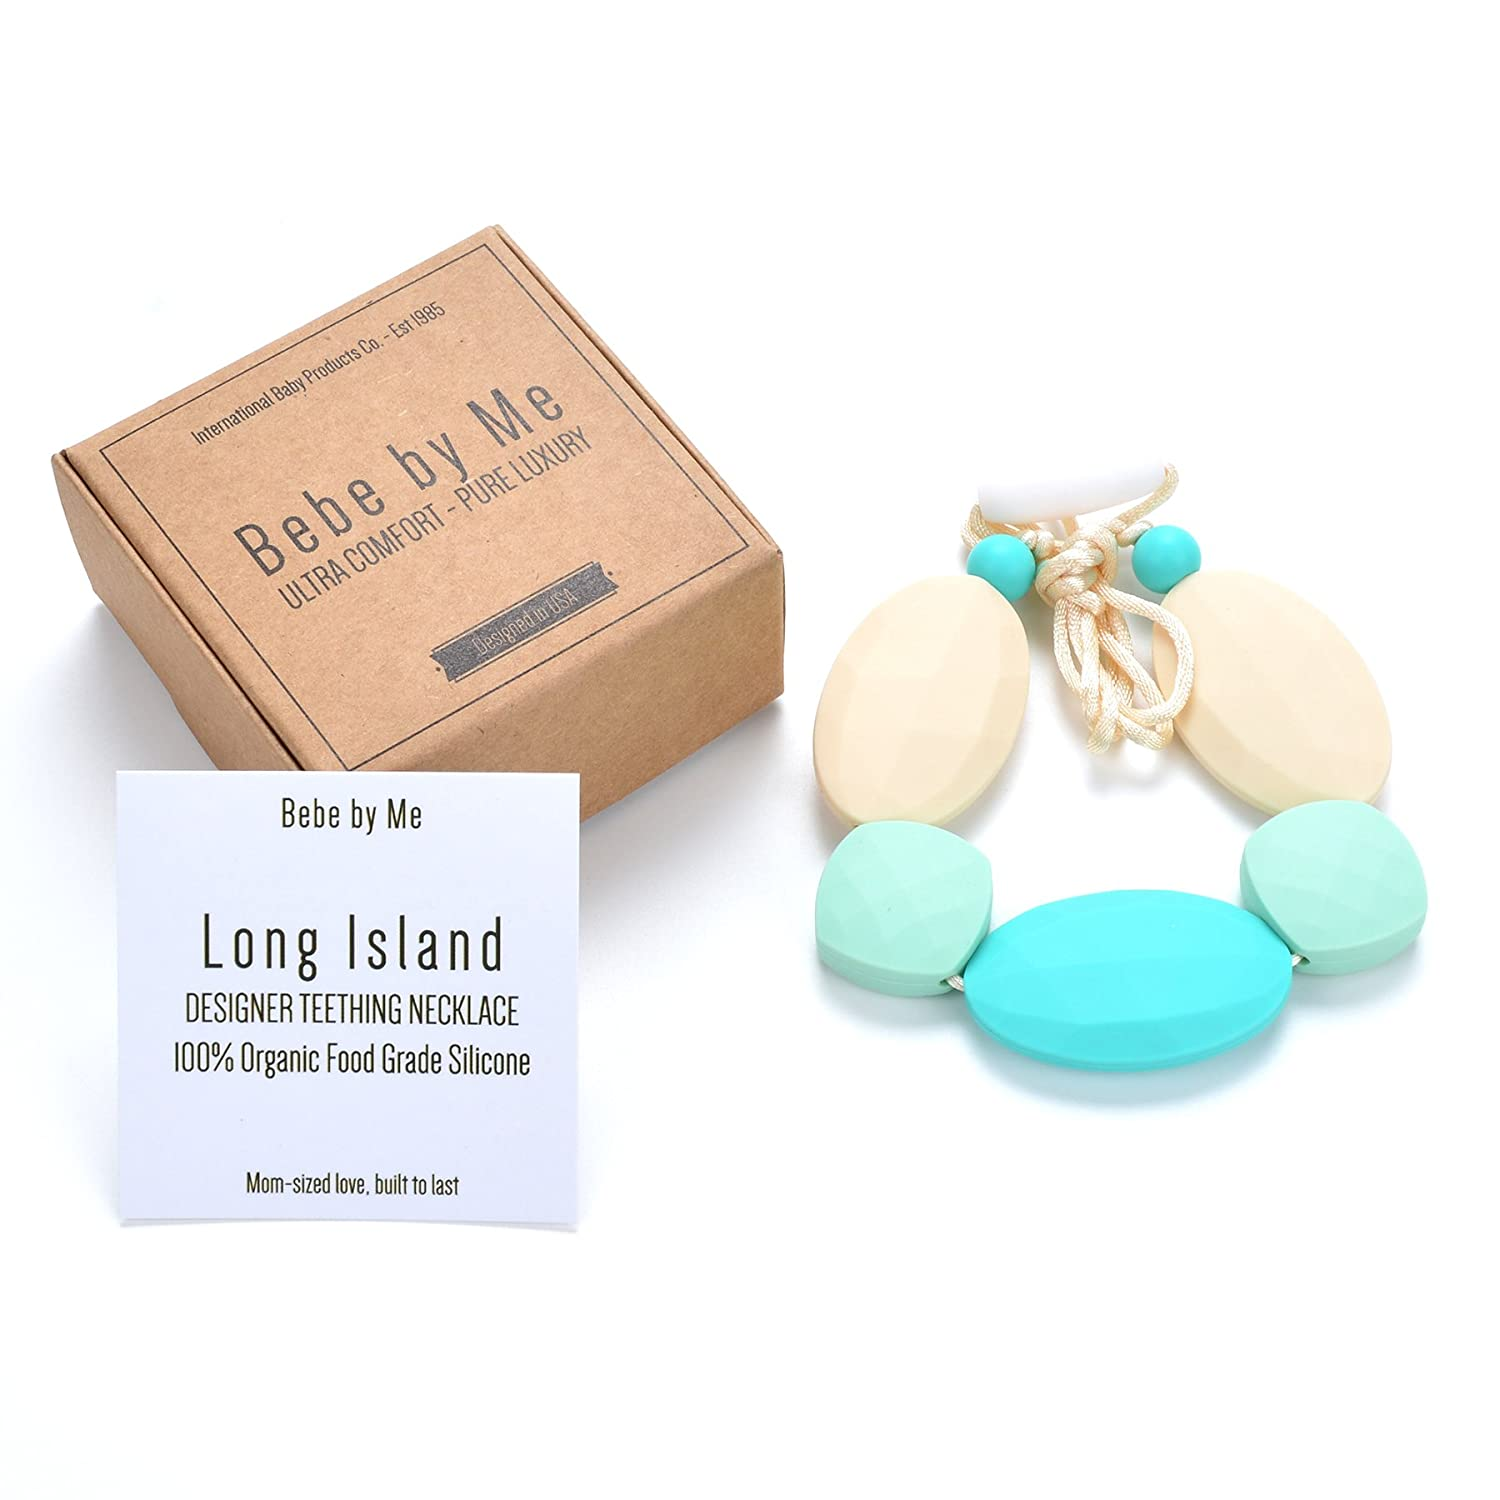 BEBE Designer Teething Necklace Long Island Bebe by Me International